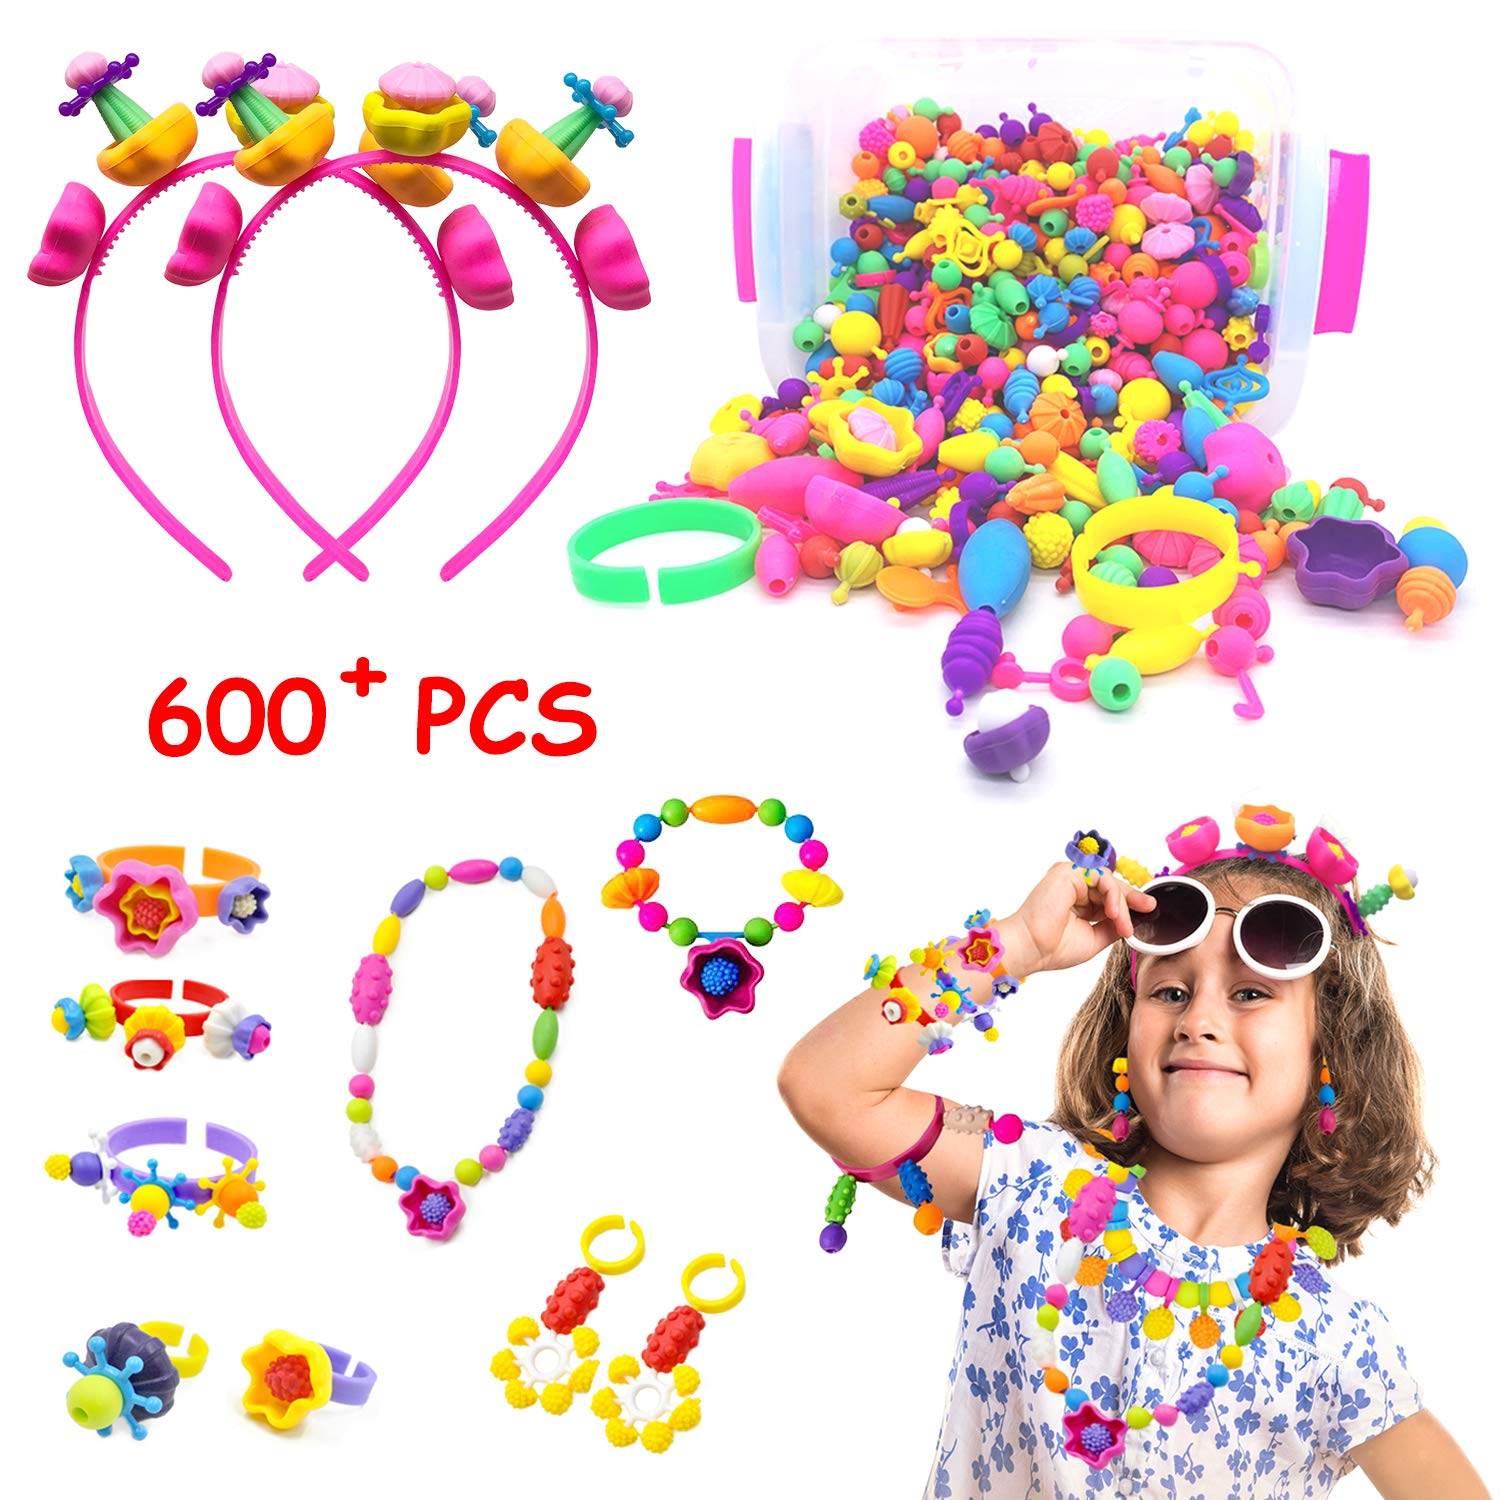 MALOMME Pop Beads, 600+ Pcs Kids Jewelry Making Kit Girls DIY Snap Pop Beads Toys for Kids Toddlers Art & Craft Kits Pop Arty Friendship Bracelets Necklaces Rings Toy Gift for Age 3 4 5 6 7 8 9 Years